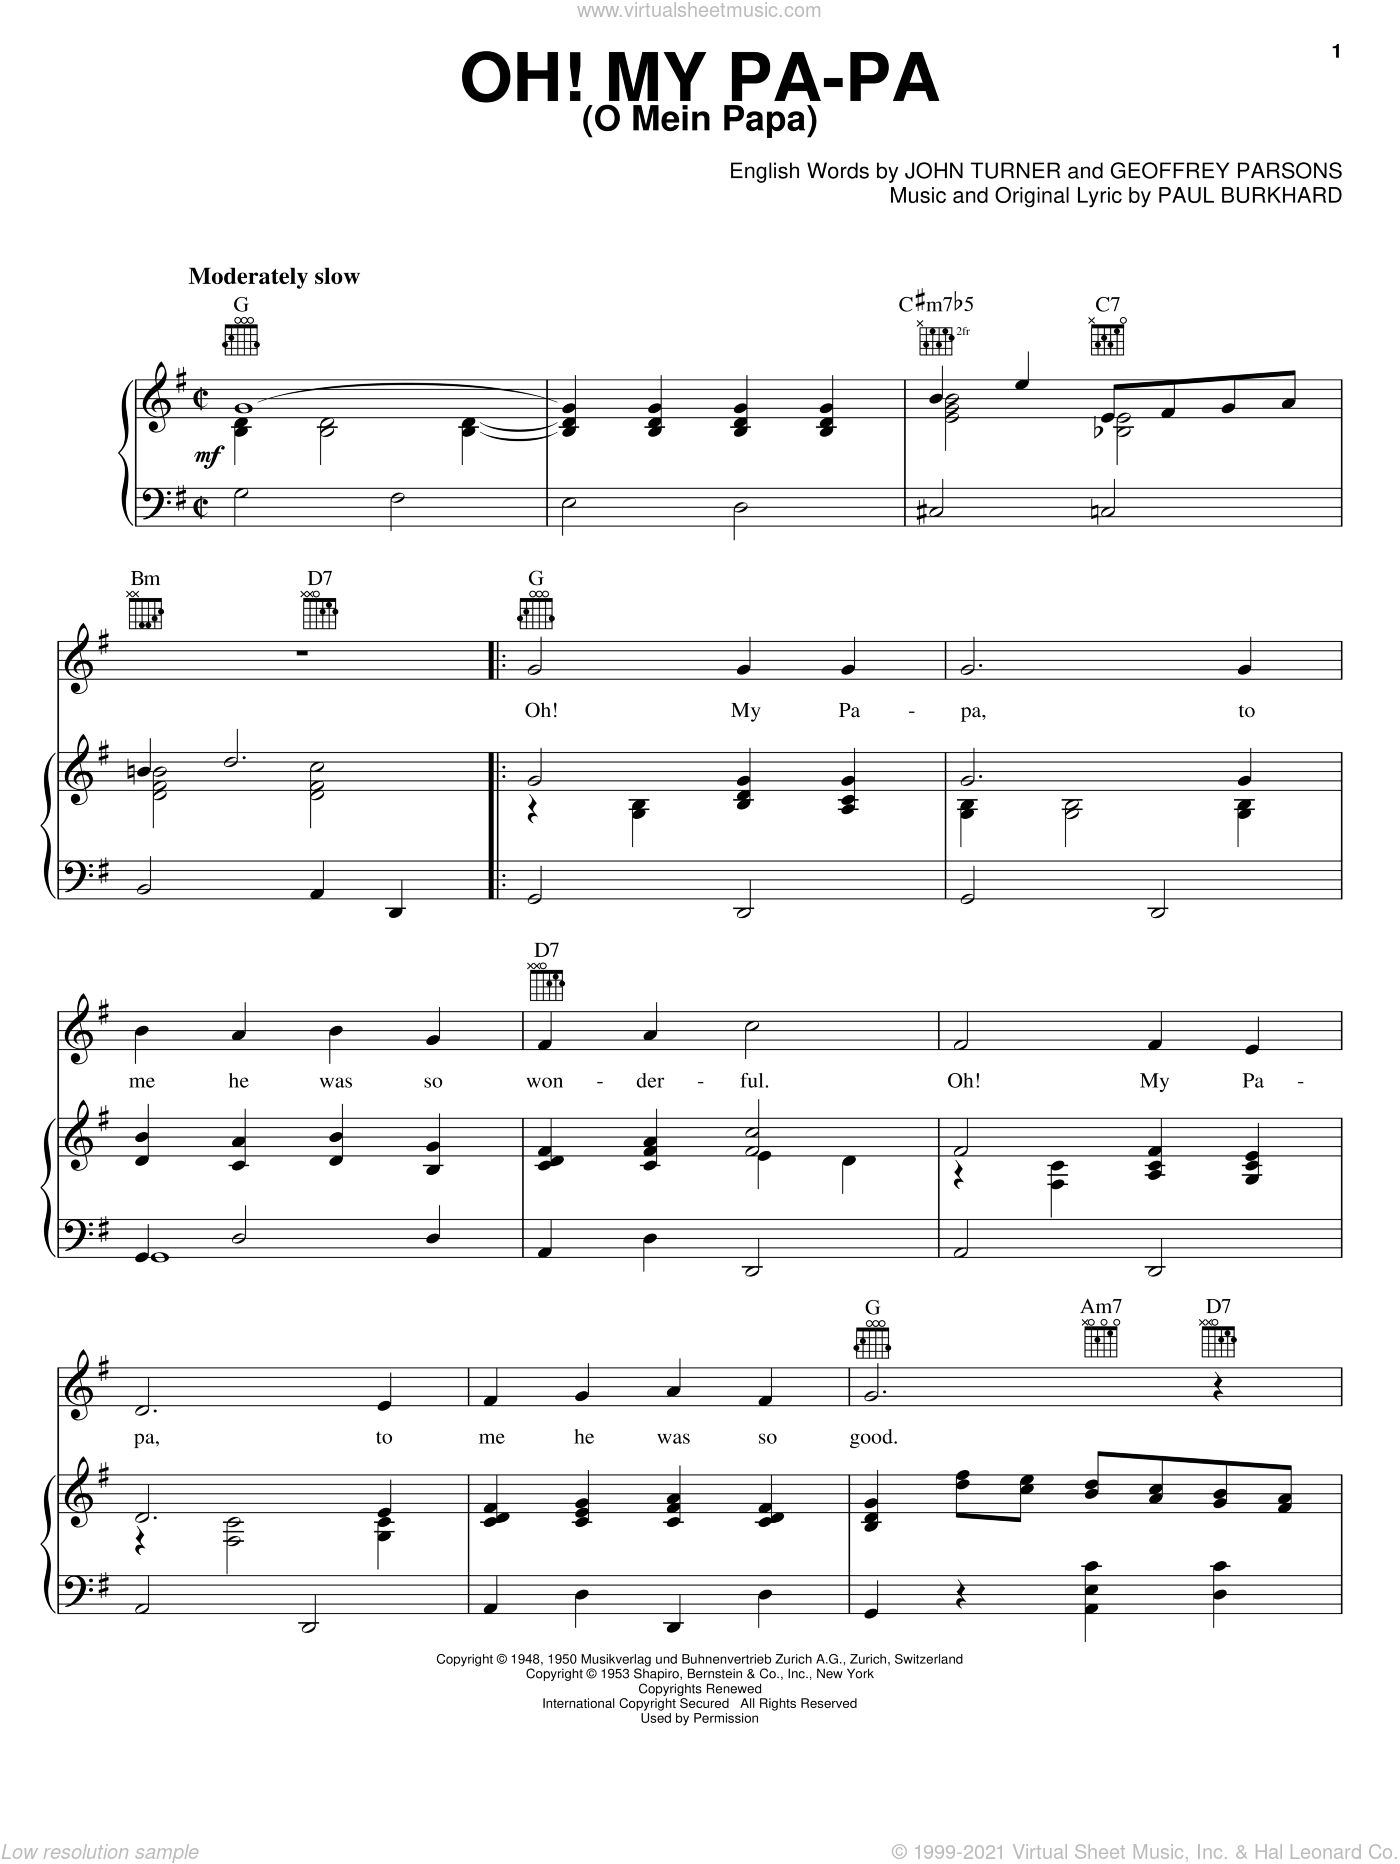 Oh! My Pa-Pa (O Mein Papa) sheet music for voice, piano or guitar by Geoffrey Parsons and John Turner, intermediate voice, piano or guitar. Score Image Preview.